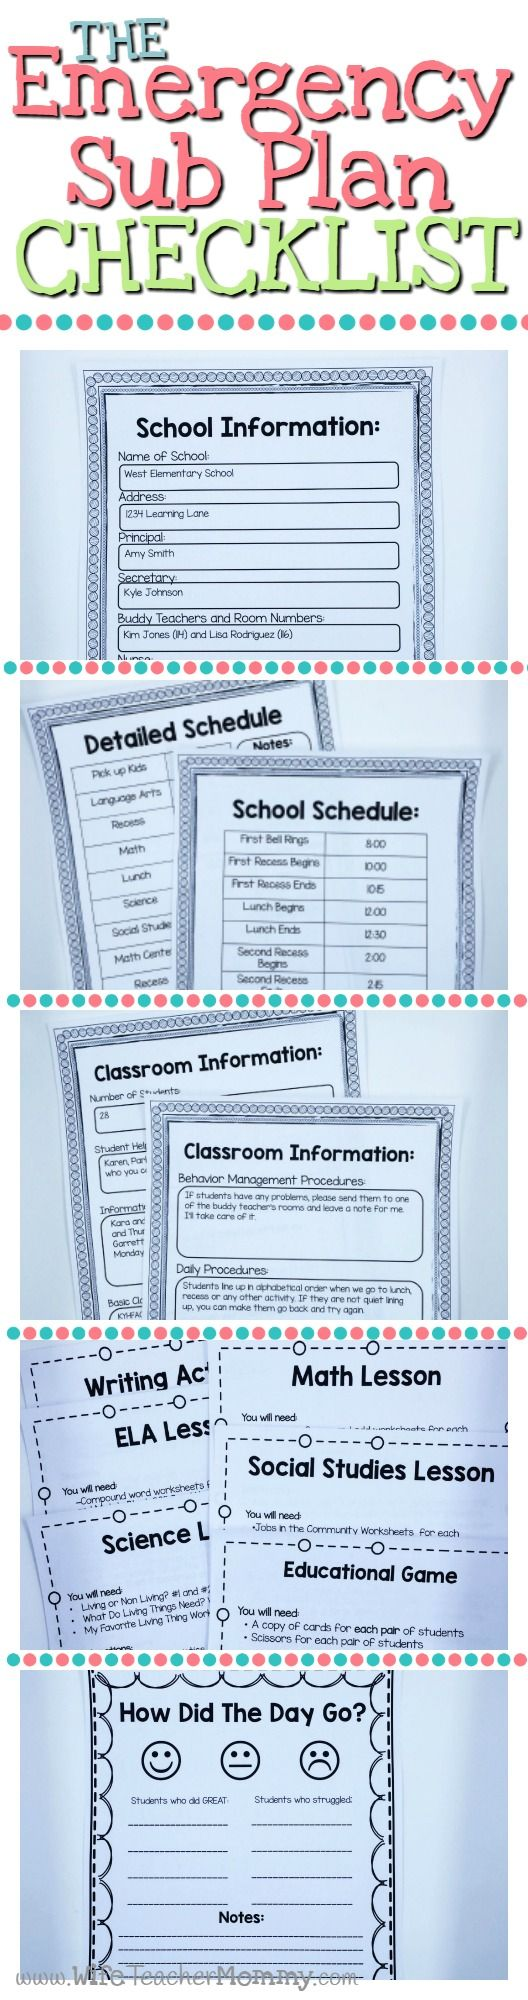 The Emergency Sub Plan Checklist includes 5 things that your sub plans MUST Include! Free printables! School Information, School Schedule, Class Information, Lesson Plans & Worksheets, and End of Day Form. http://www.wifeteachermommy.com/2016/02/5-things-your-emergency-sub-plans-must.html